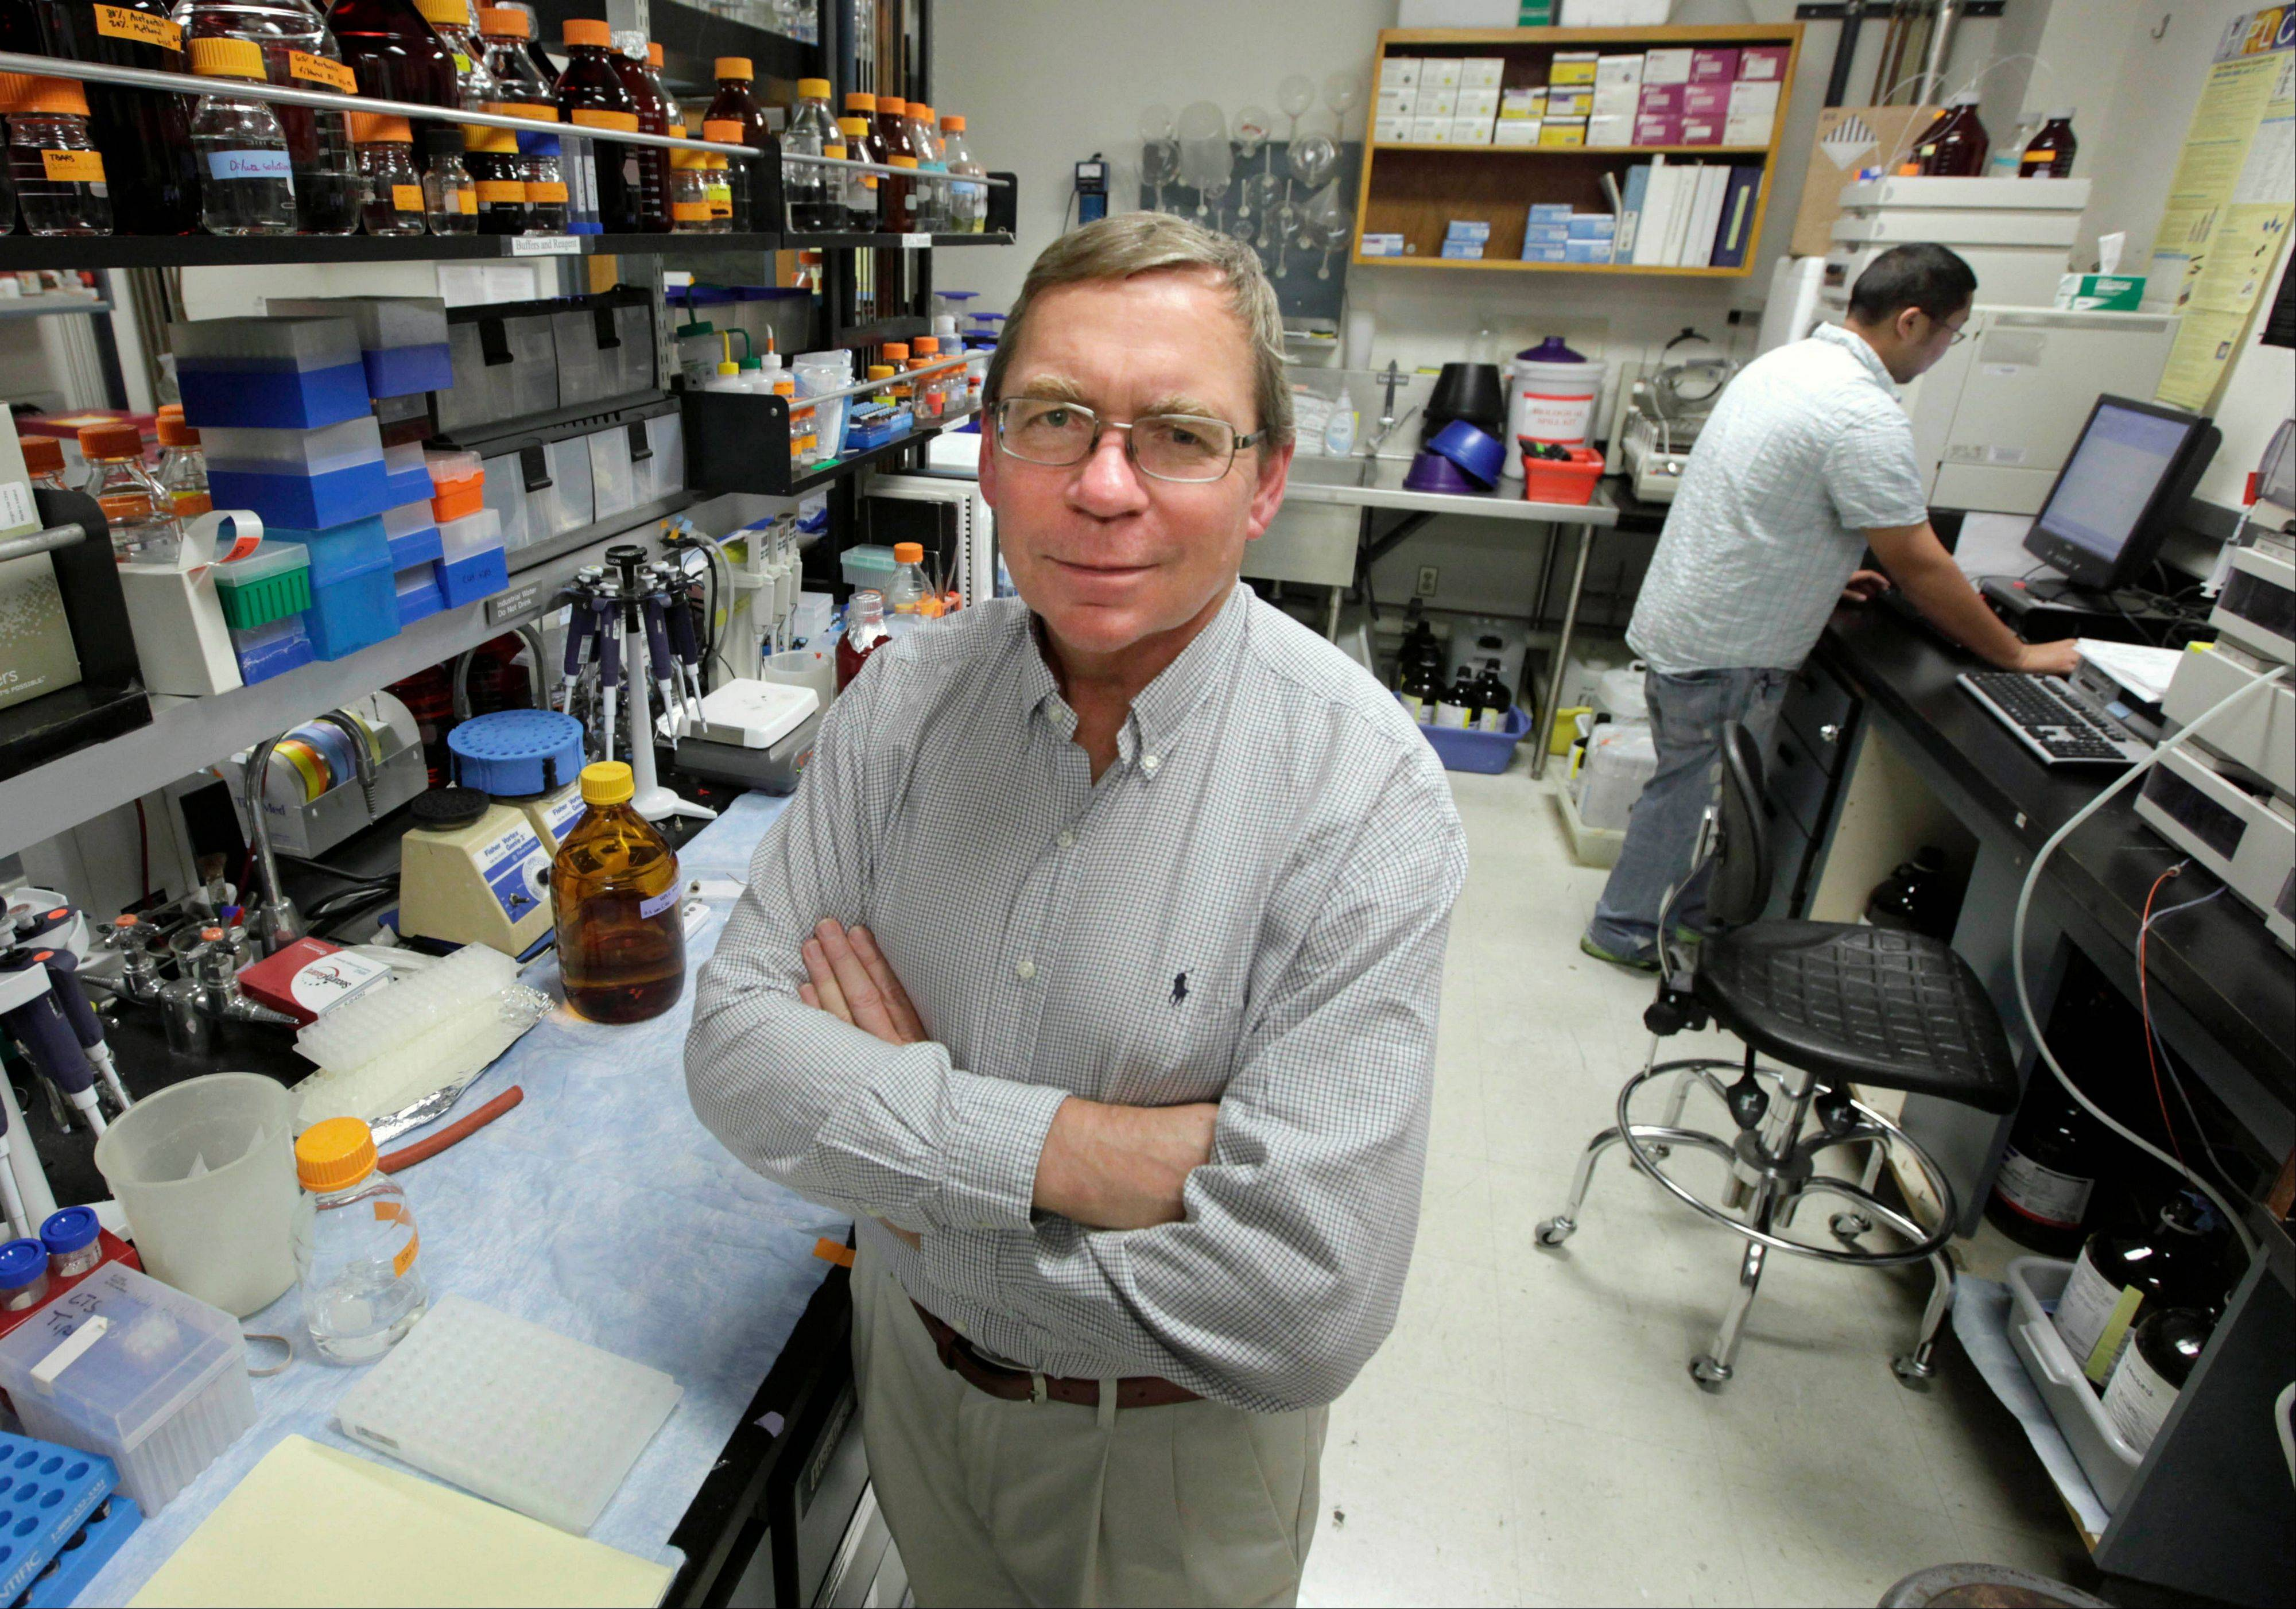 Carl Keen, who serves as chairman of the developmental nutrition program at the University of California, Davis, poses in one of the schools laboratories in Davis, Calif. Keen, whose position is funded by the candy giant, Mars Inc., said his laboratory�s findings have pushed science forward through establishing that nutrients in cocoa powder can lower heart disease risk.